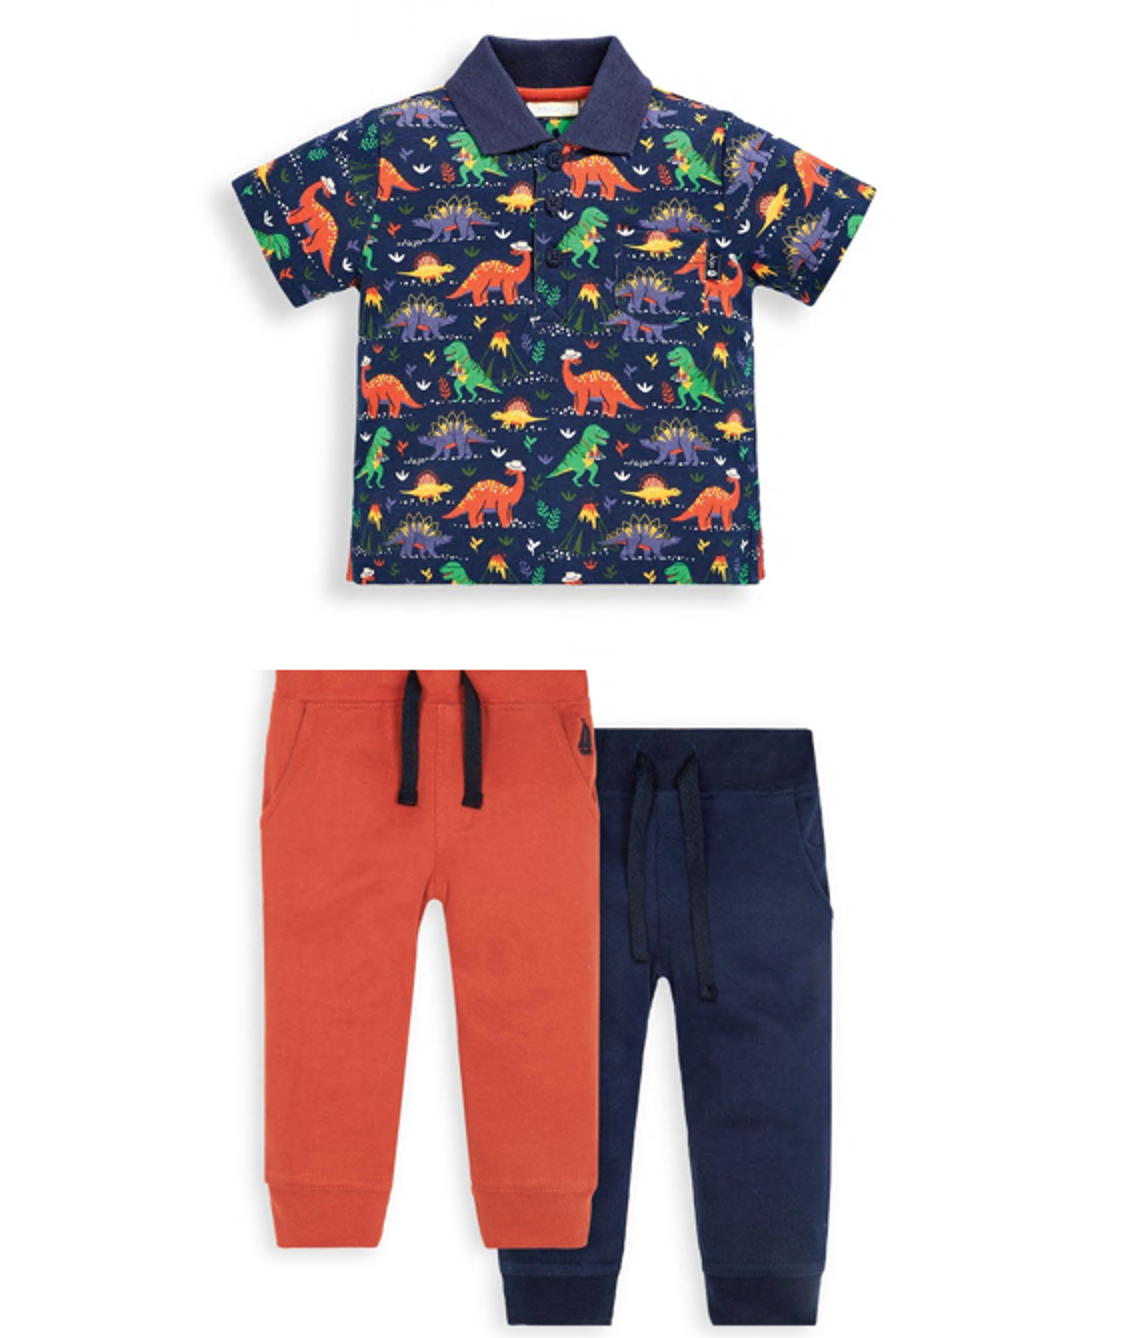 Boys' Dinosaurs Outfit